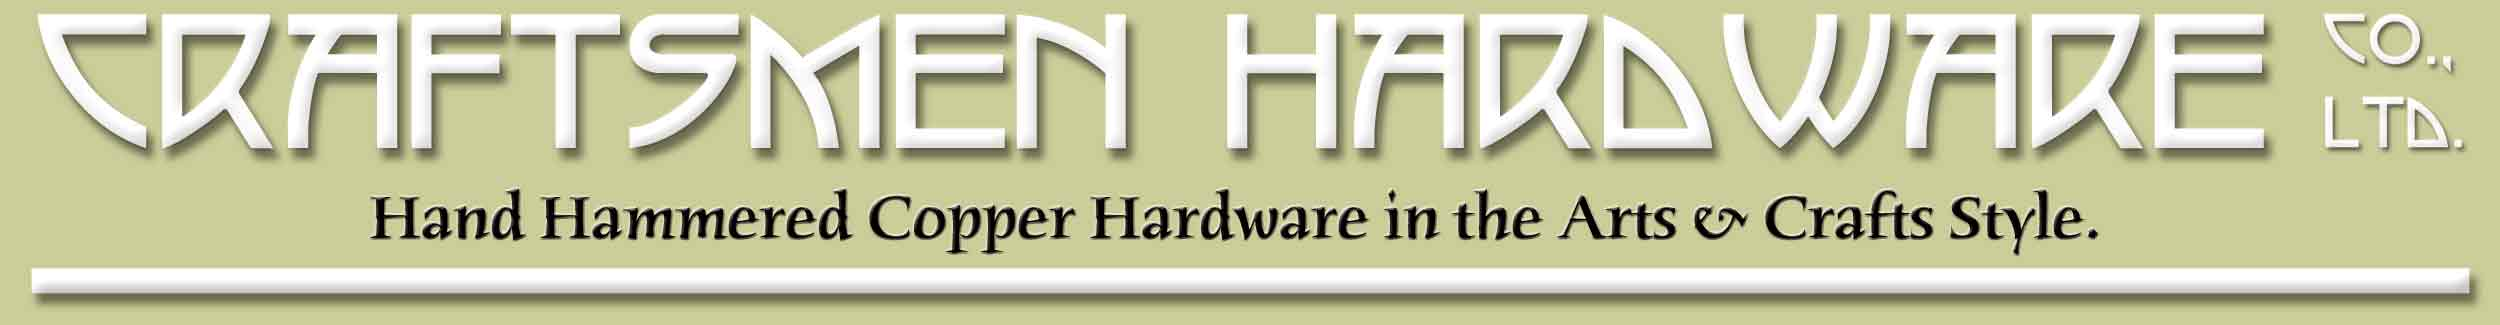 Craftsmen Hardware Company, LTD